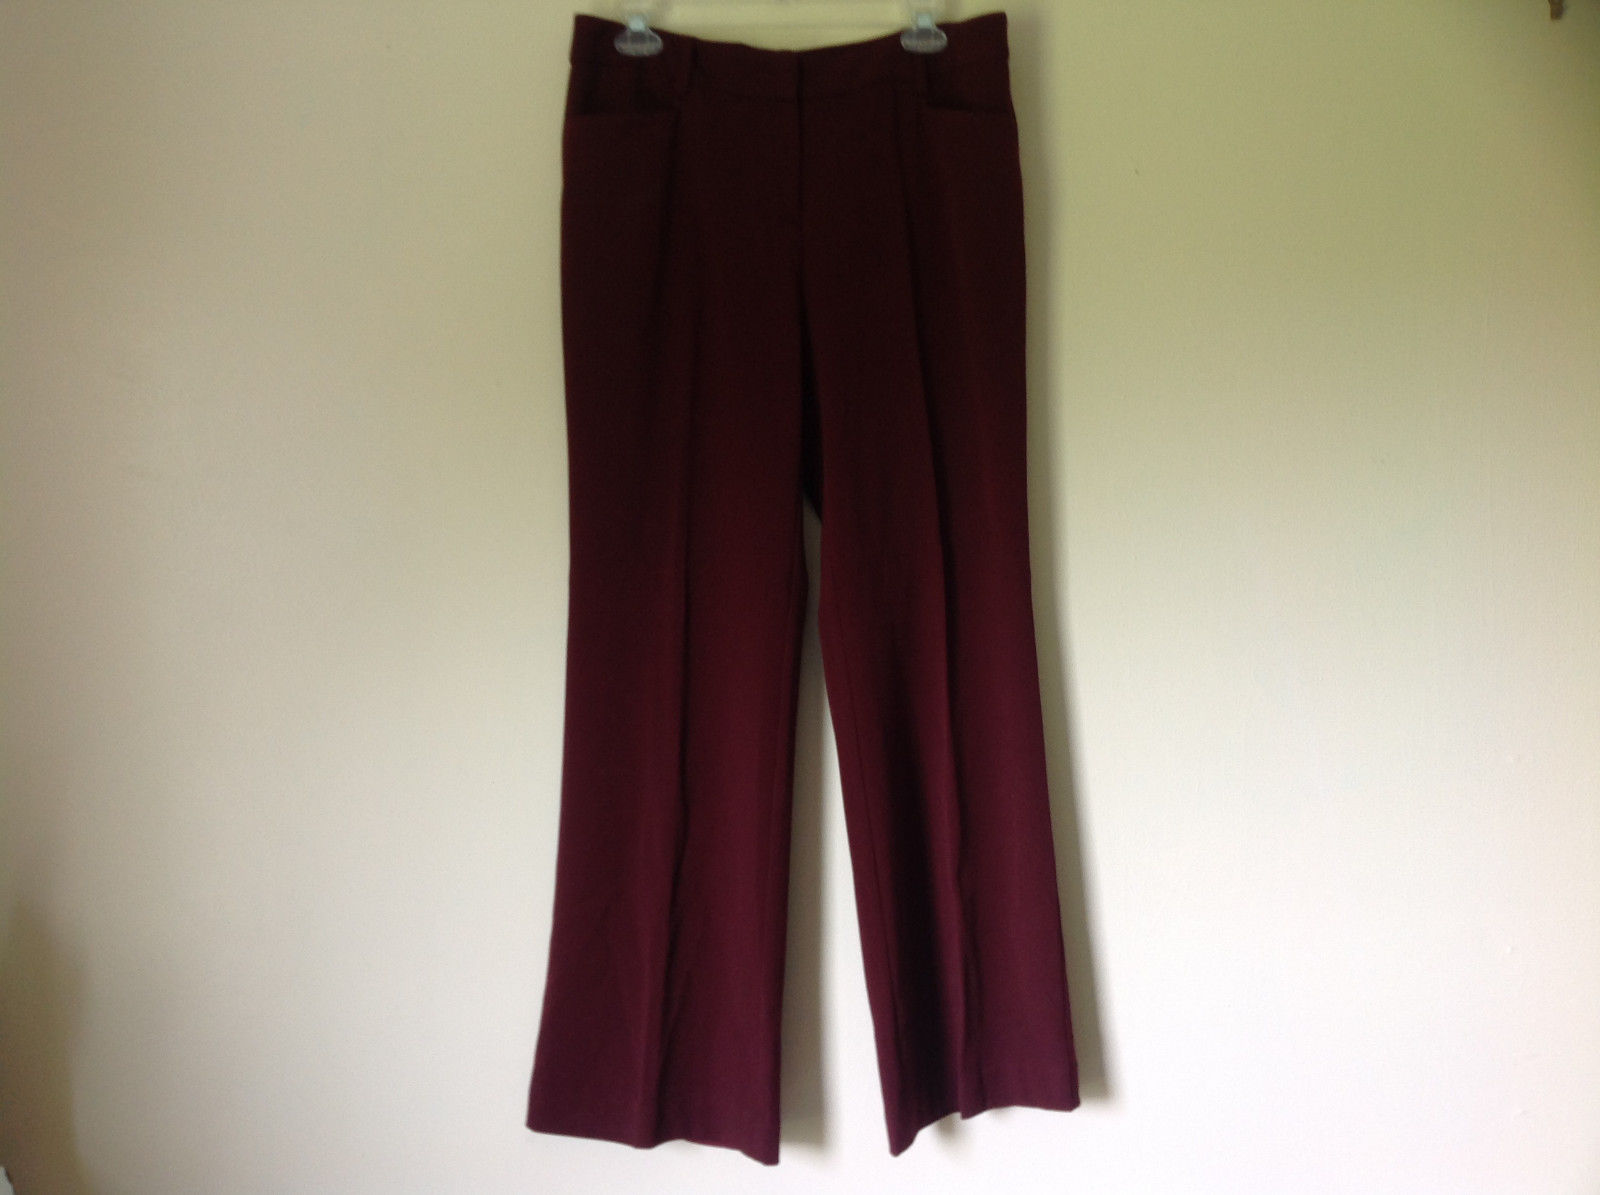 Maroon Dress Pants by Apt 9 Four Pockets Two in Back are for Show Size 10